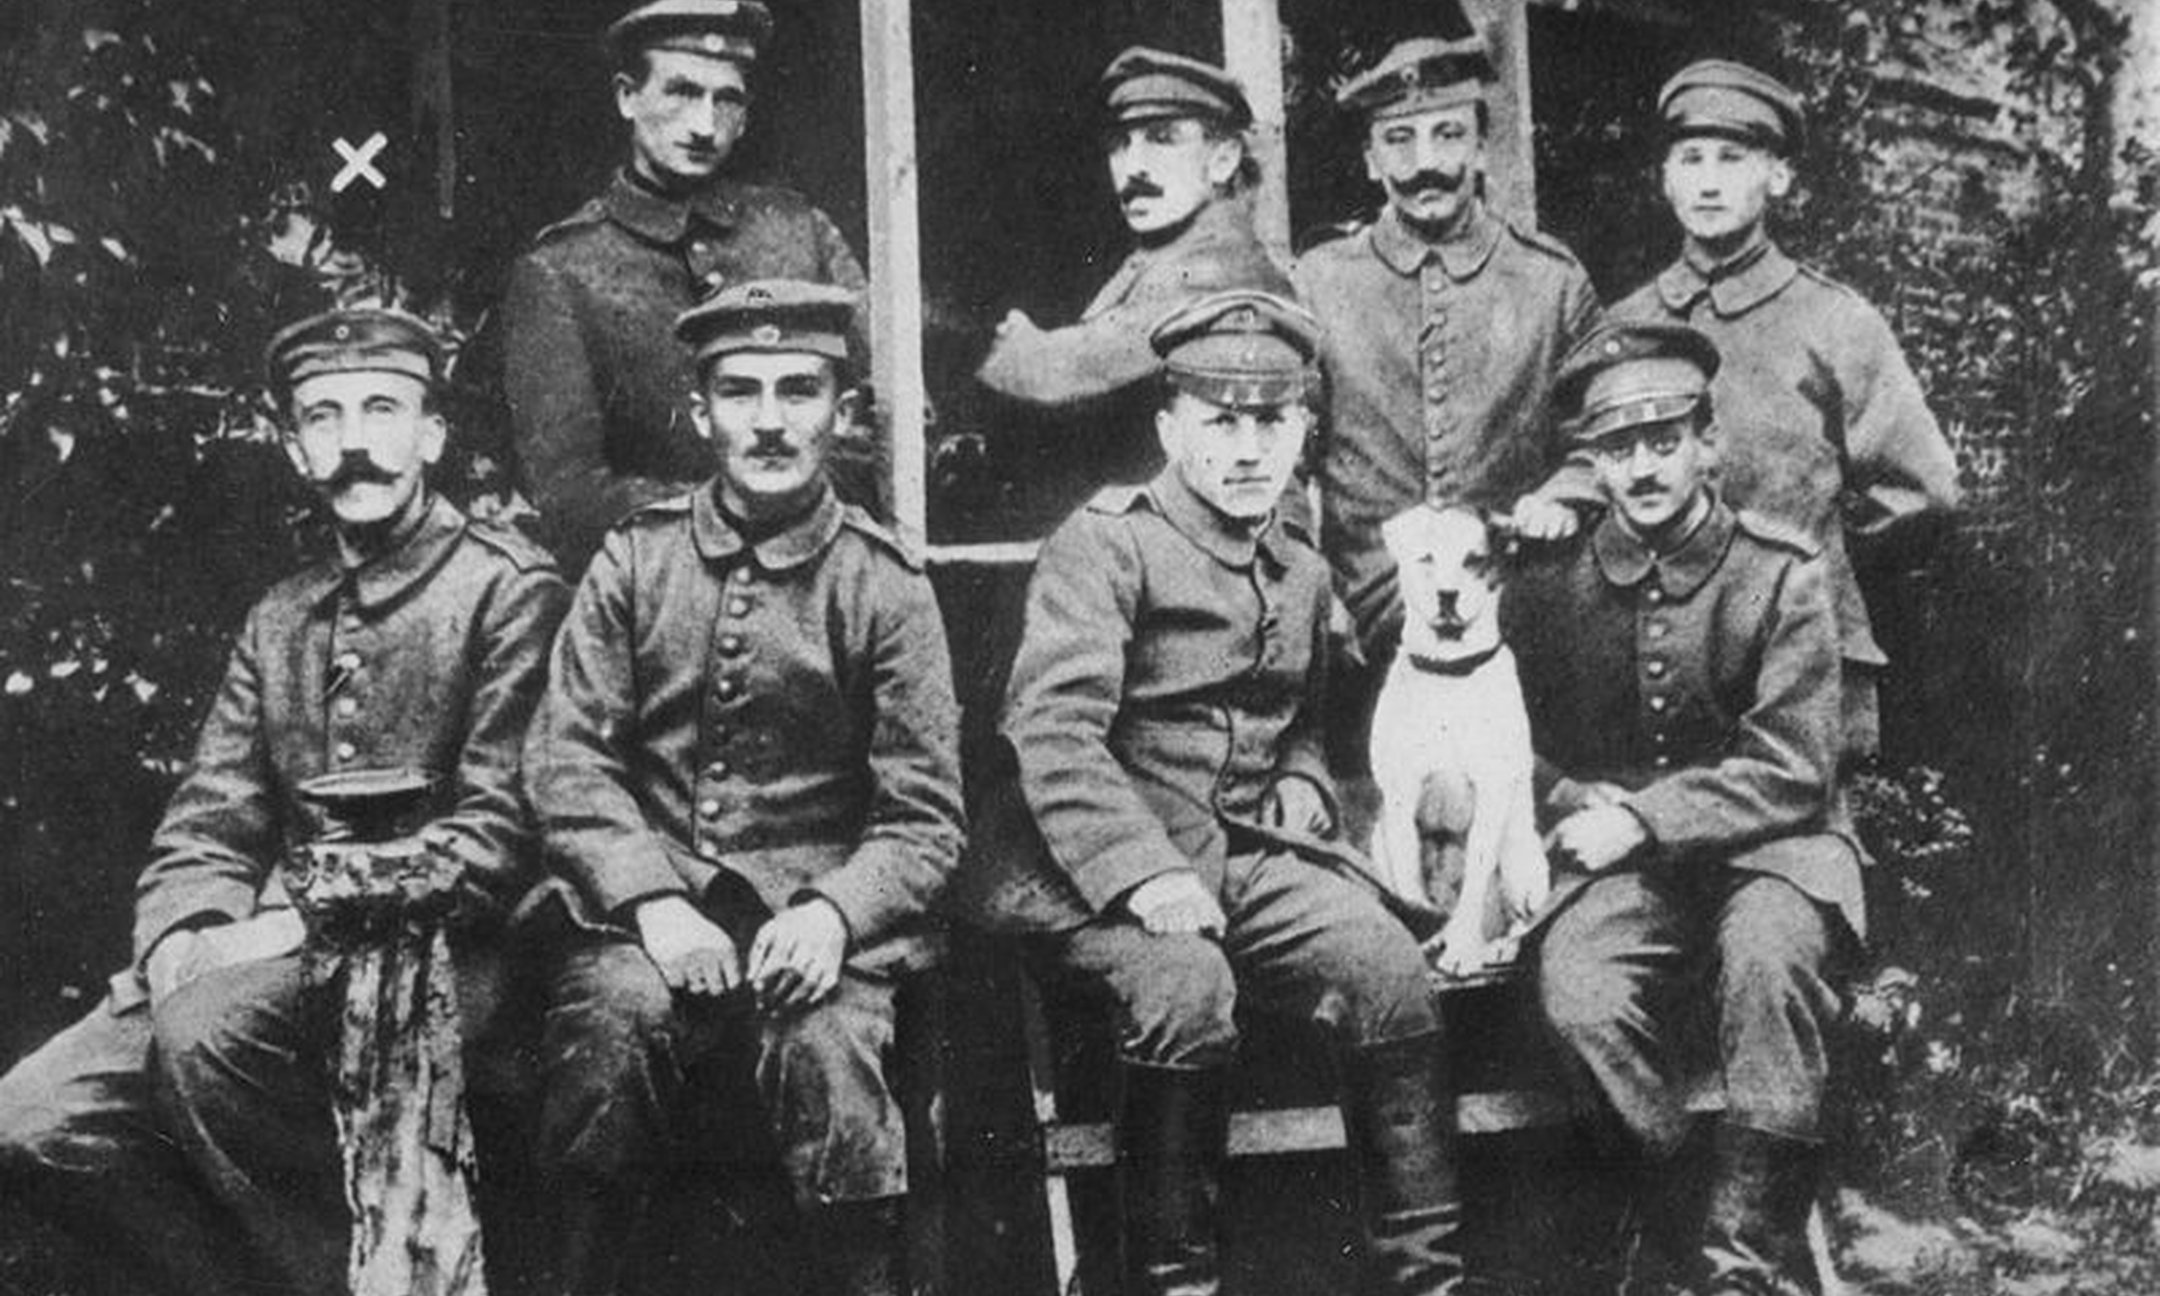 German soldiers during the First World War. At the far left: Hitler as a young soldier (around 1914).